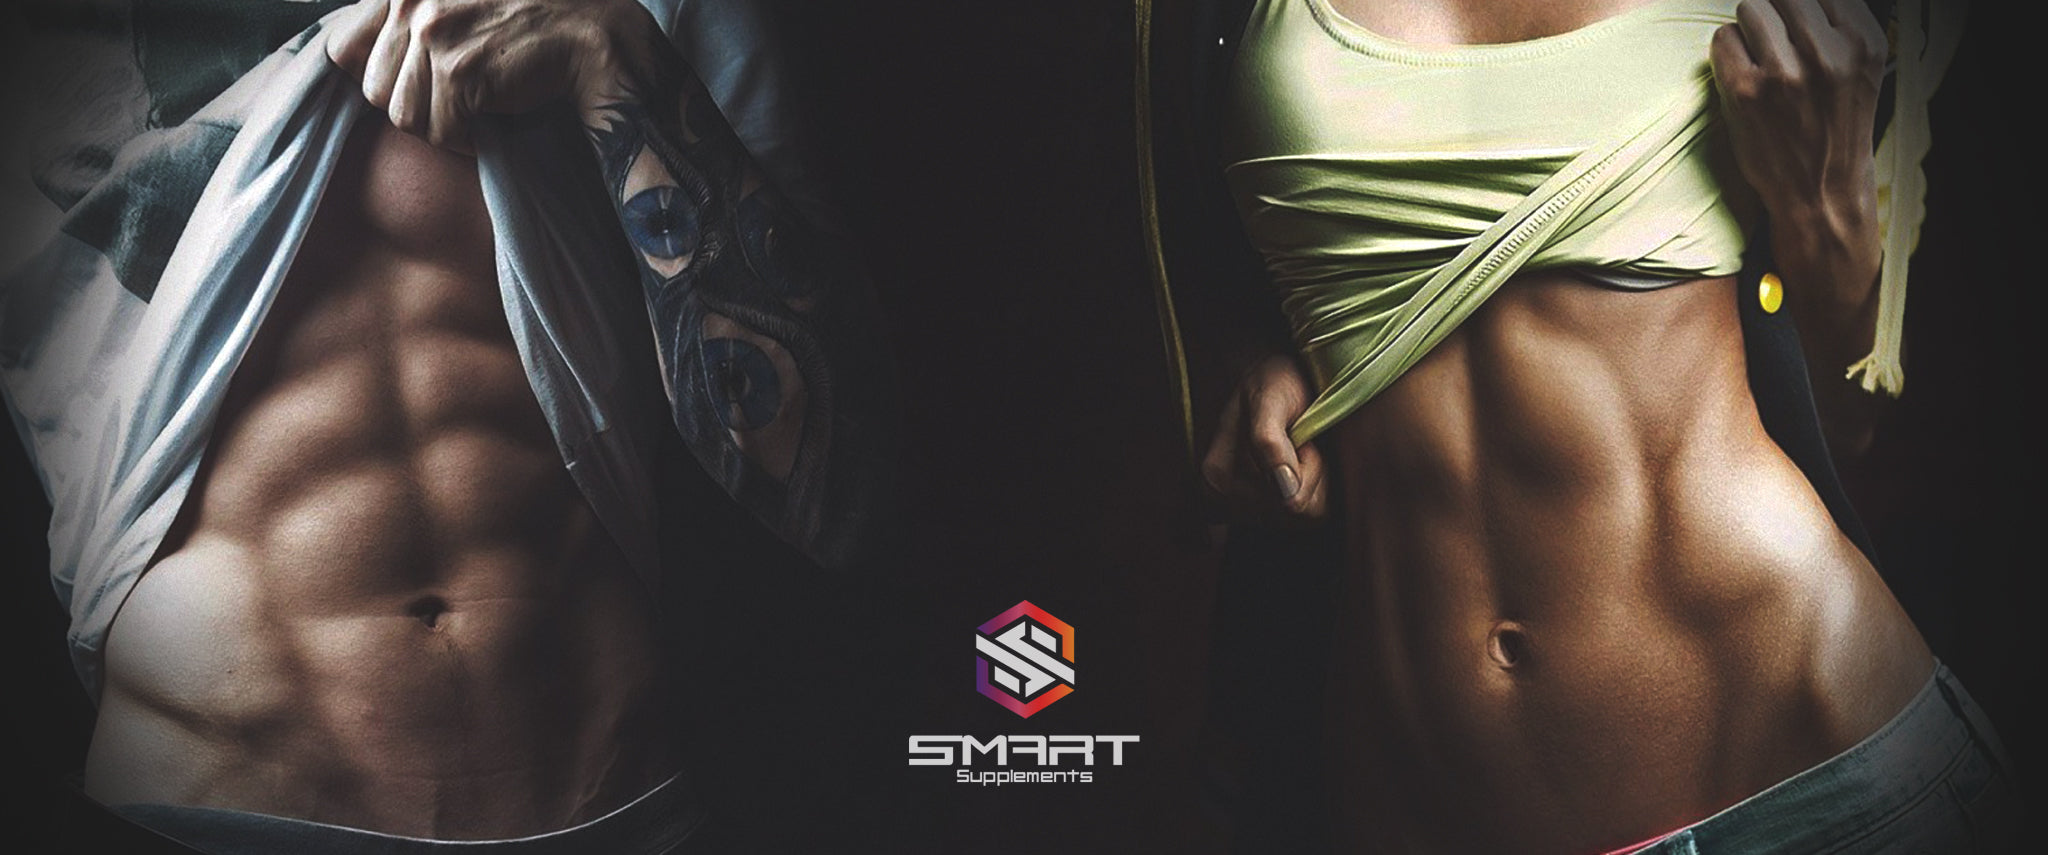 Smart Supplements Banner